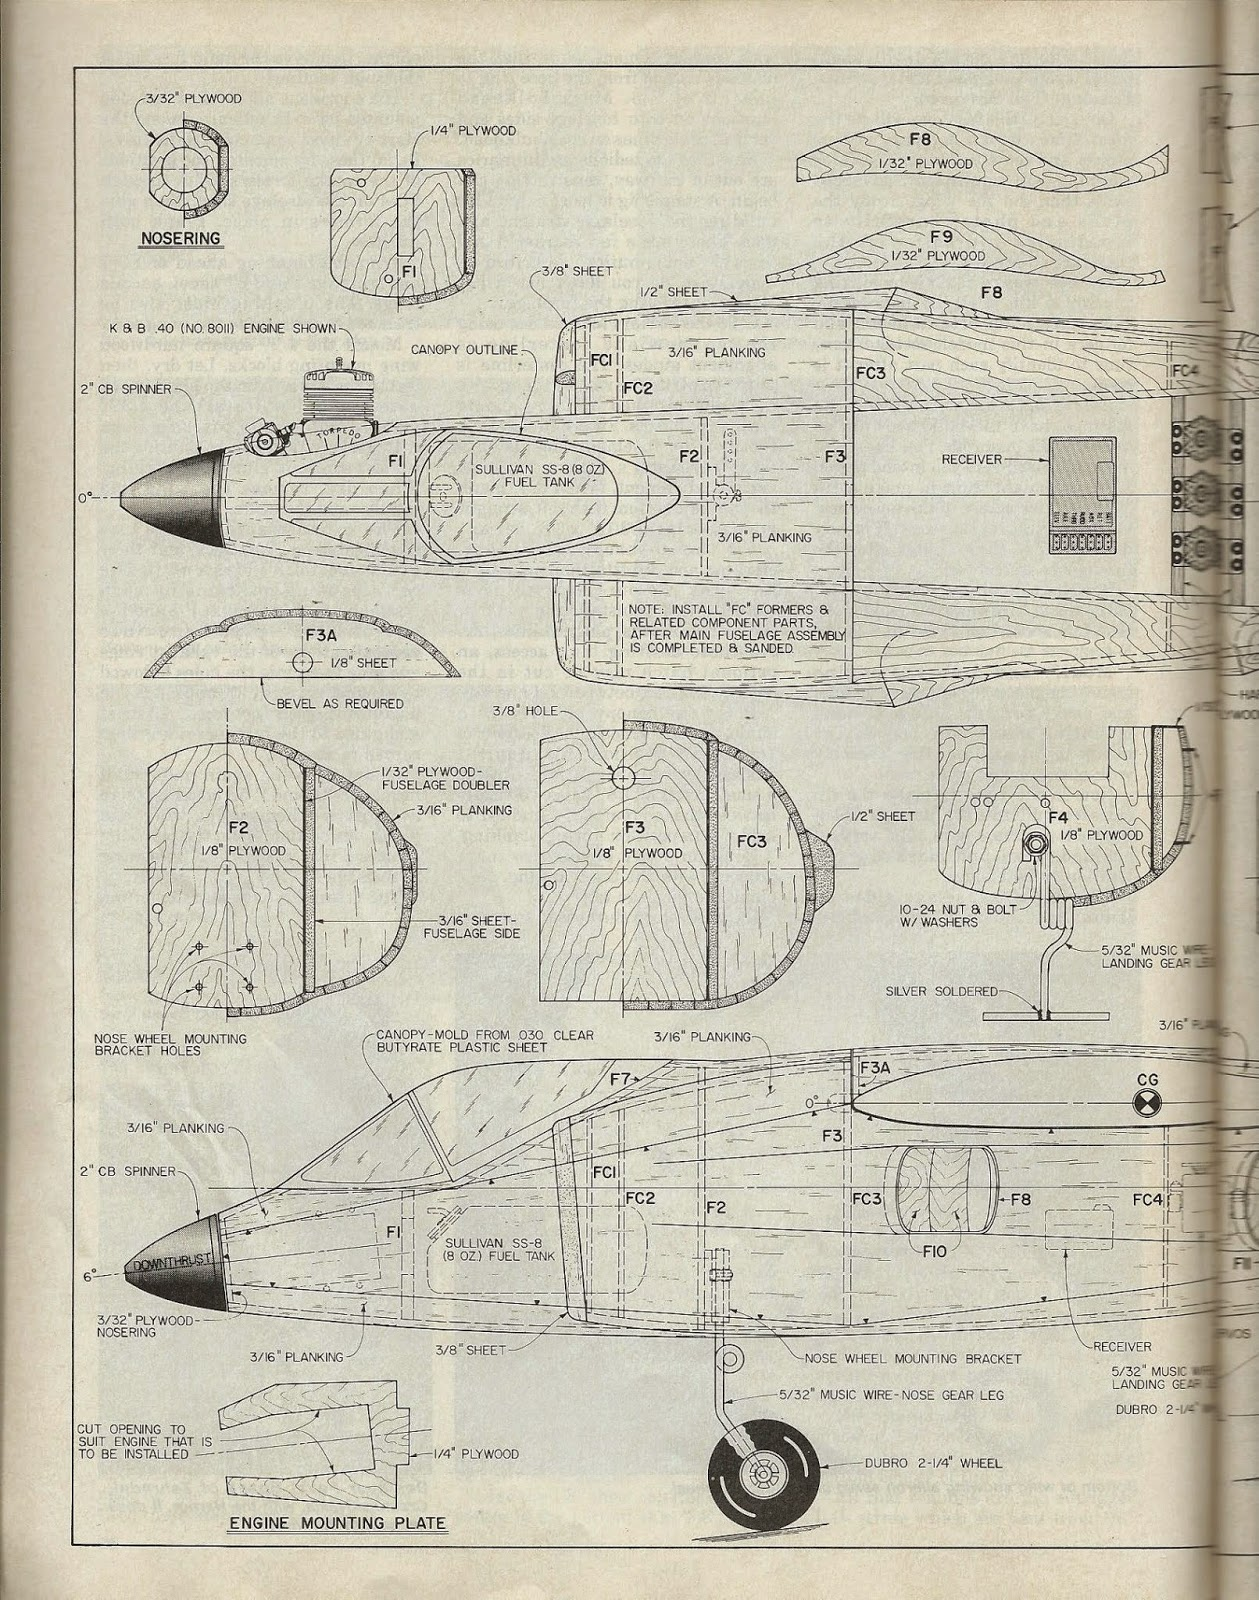 Rcm Hawker Siddeley Harrier Article And Plan R C Modeler Engine Diagram Click On The Pictures To Enlarge For Better Reading